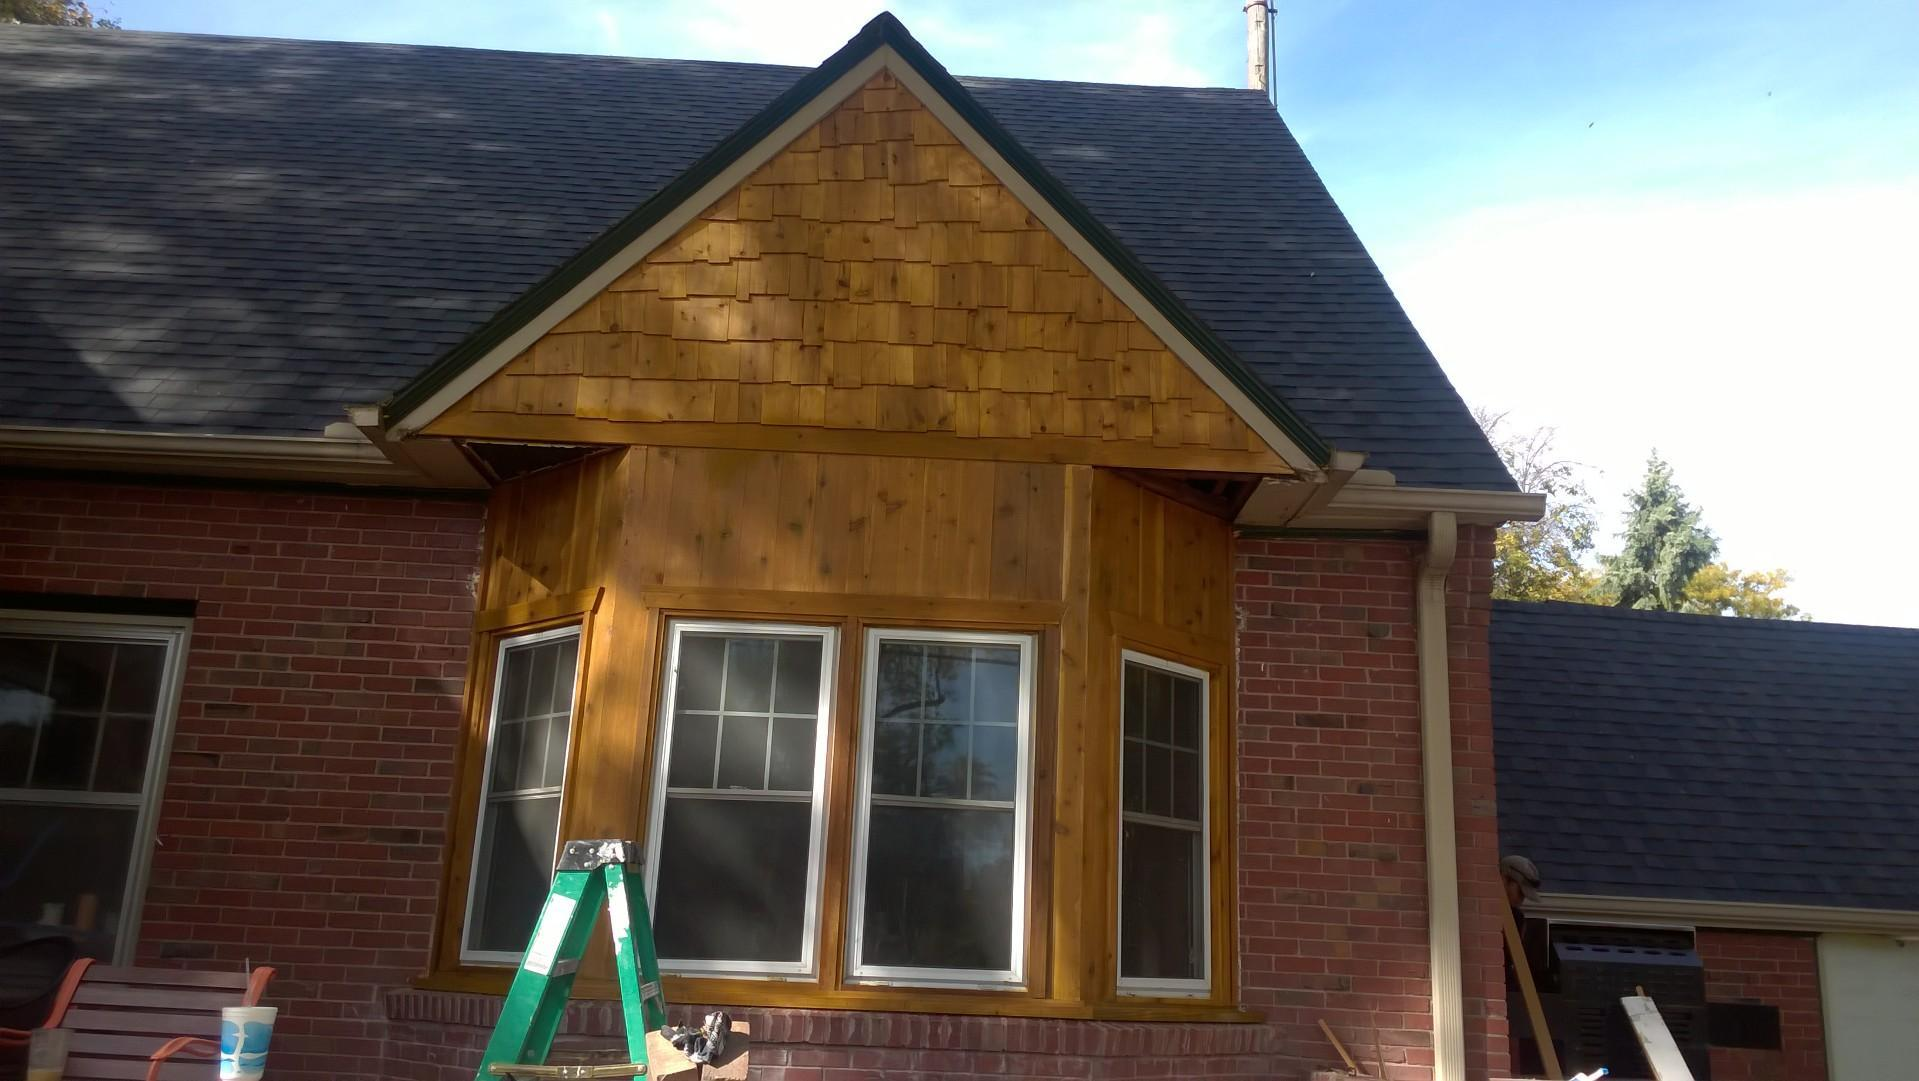 house st wakefield for rent lincoln ne cars com rentping s watch rental